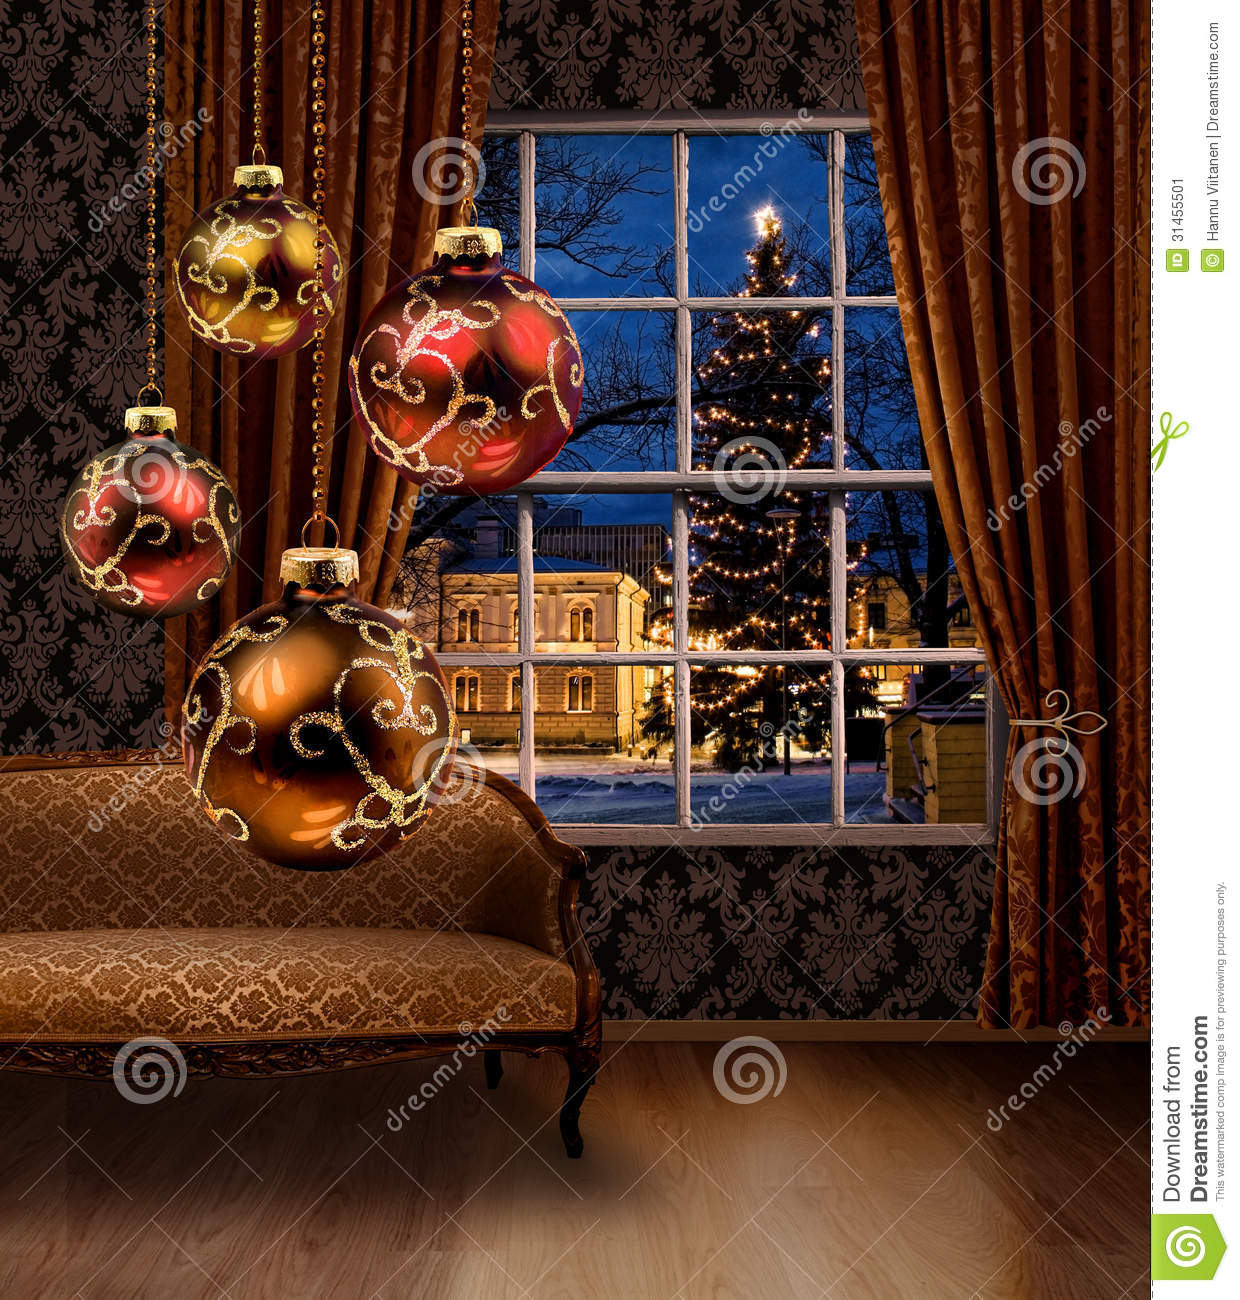 Christmas balls in room town view window stock image